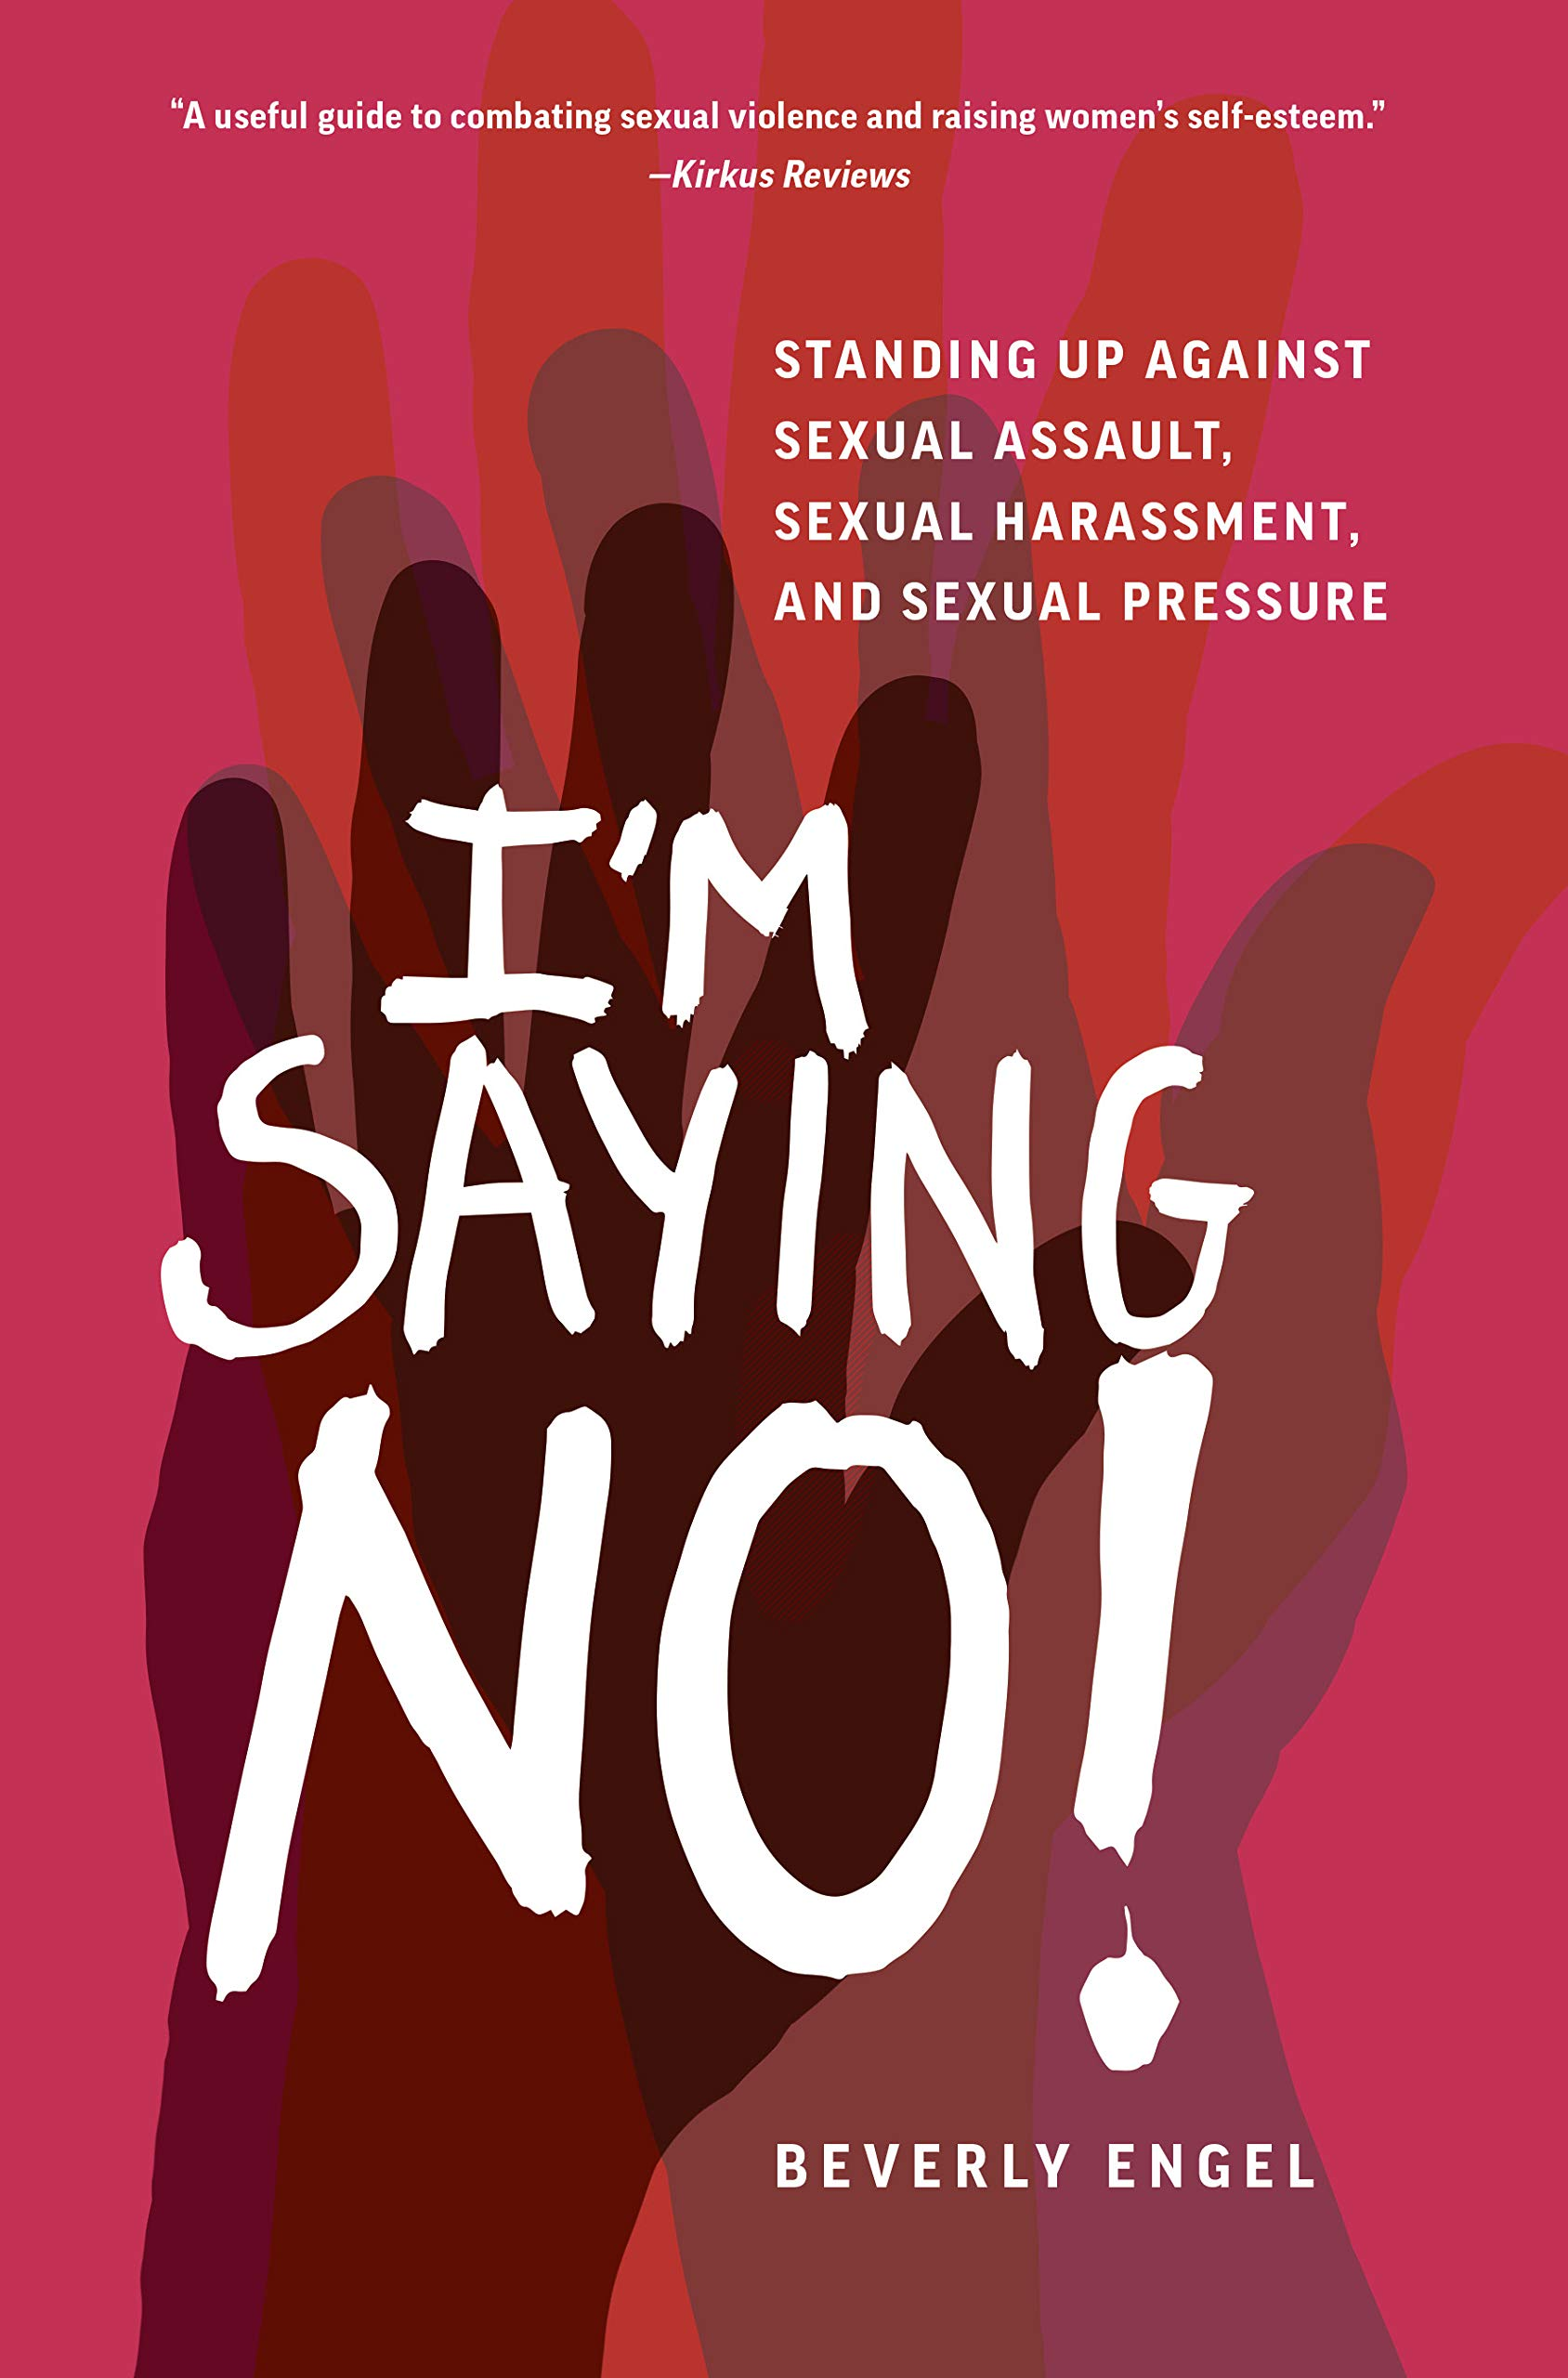 I'm Saying No!: Standing Up against Sexual Assault, Sexual Harassment, and Sexual Pressure by Beverly Engel